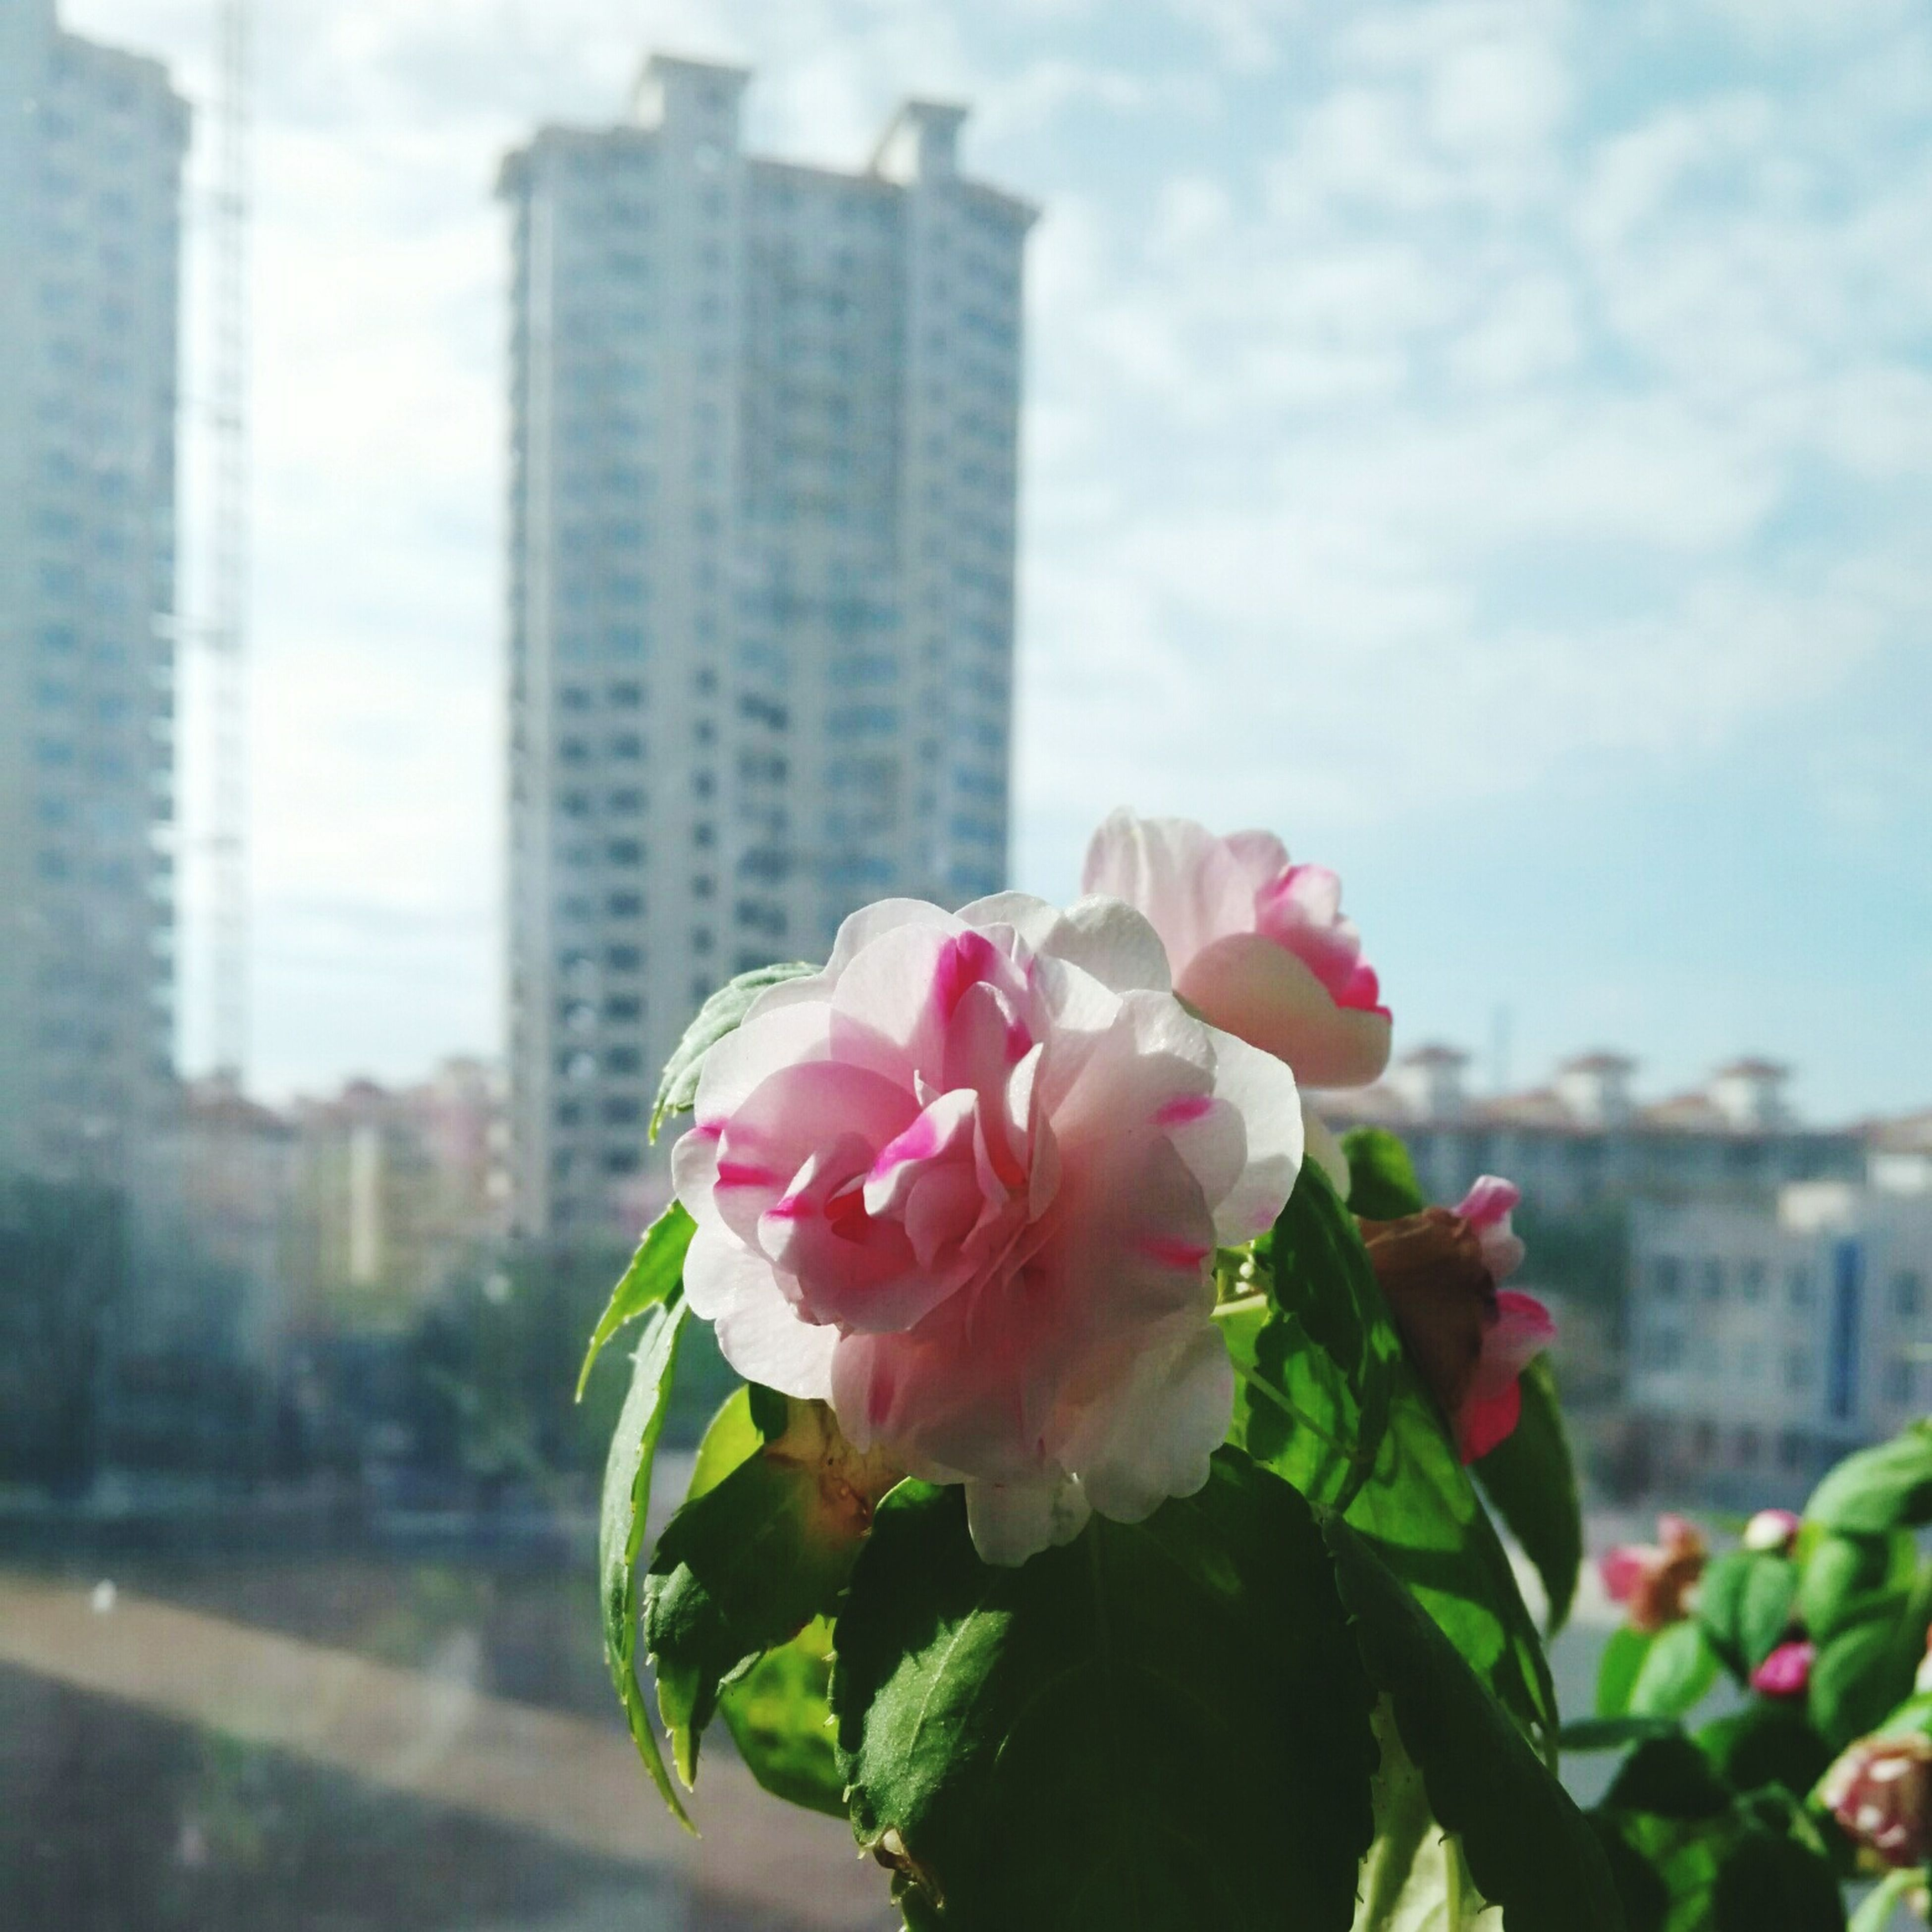 flower, fragility, freshness, petal, building exterior, flower head, architecture, focus on foreground, growth, built structure, pink color, city, sky, close-up, beauty in nature, blooming, nature, in bloom, plant, day